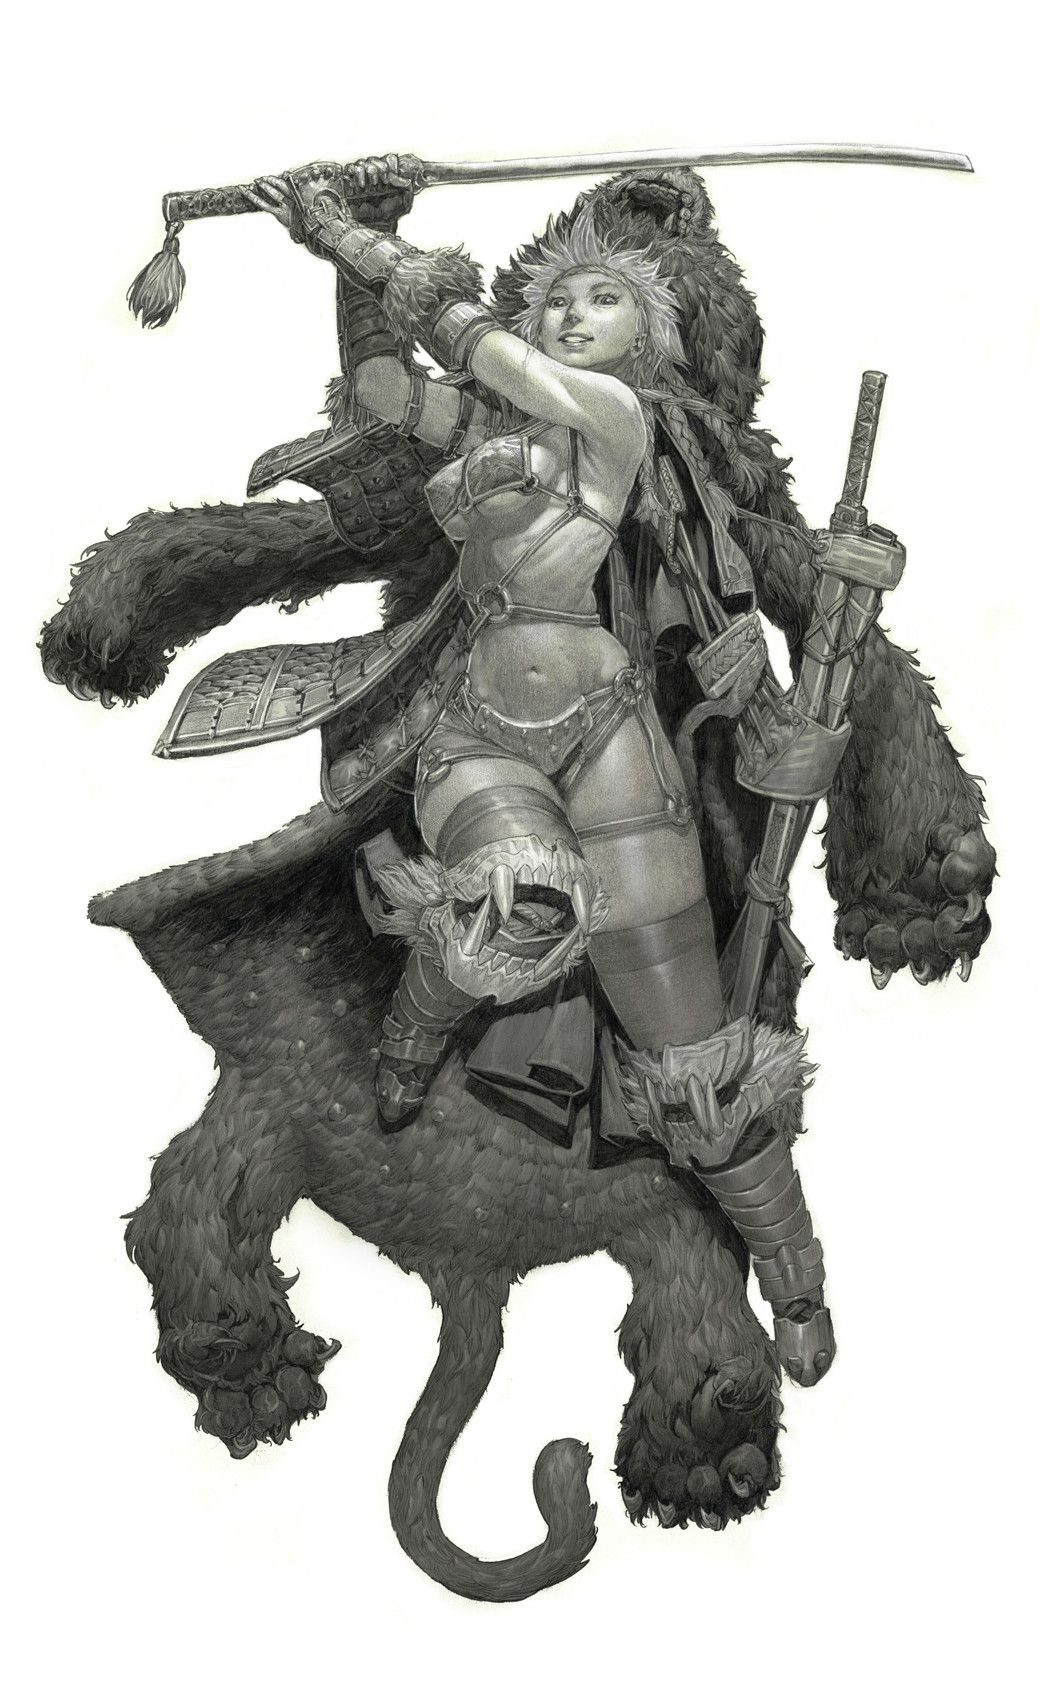 ArtStation - rockhe1, rock-he Kim